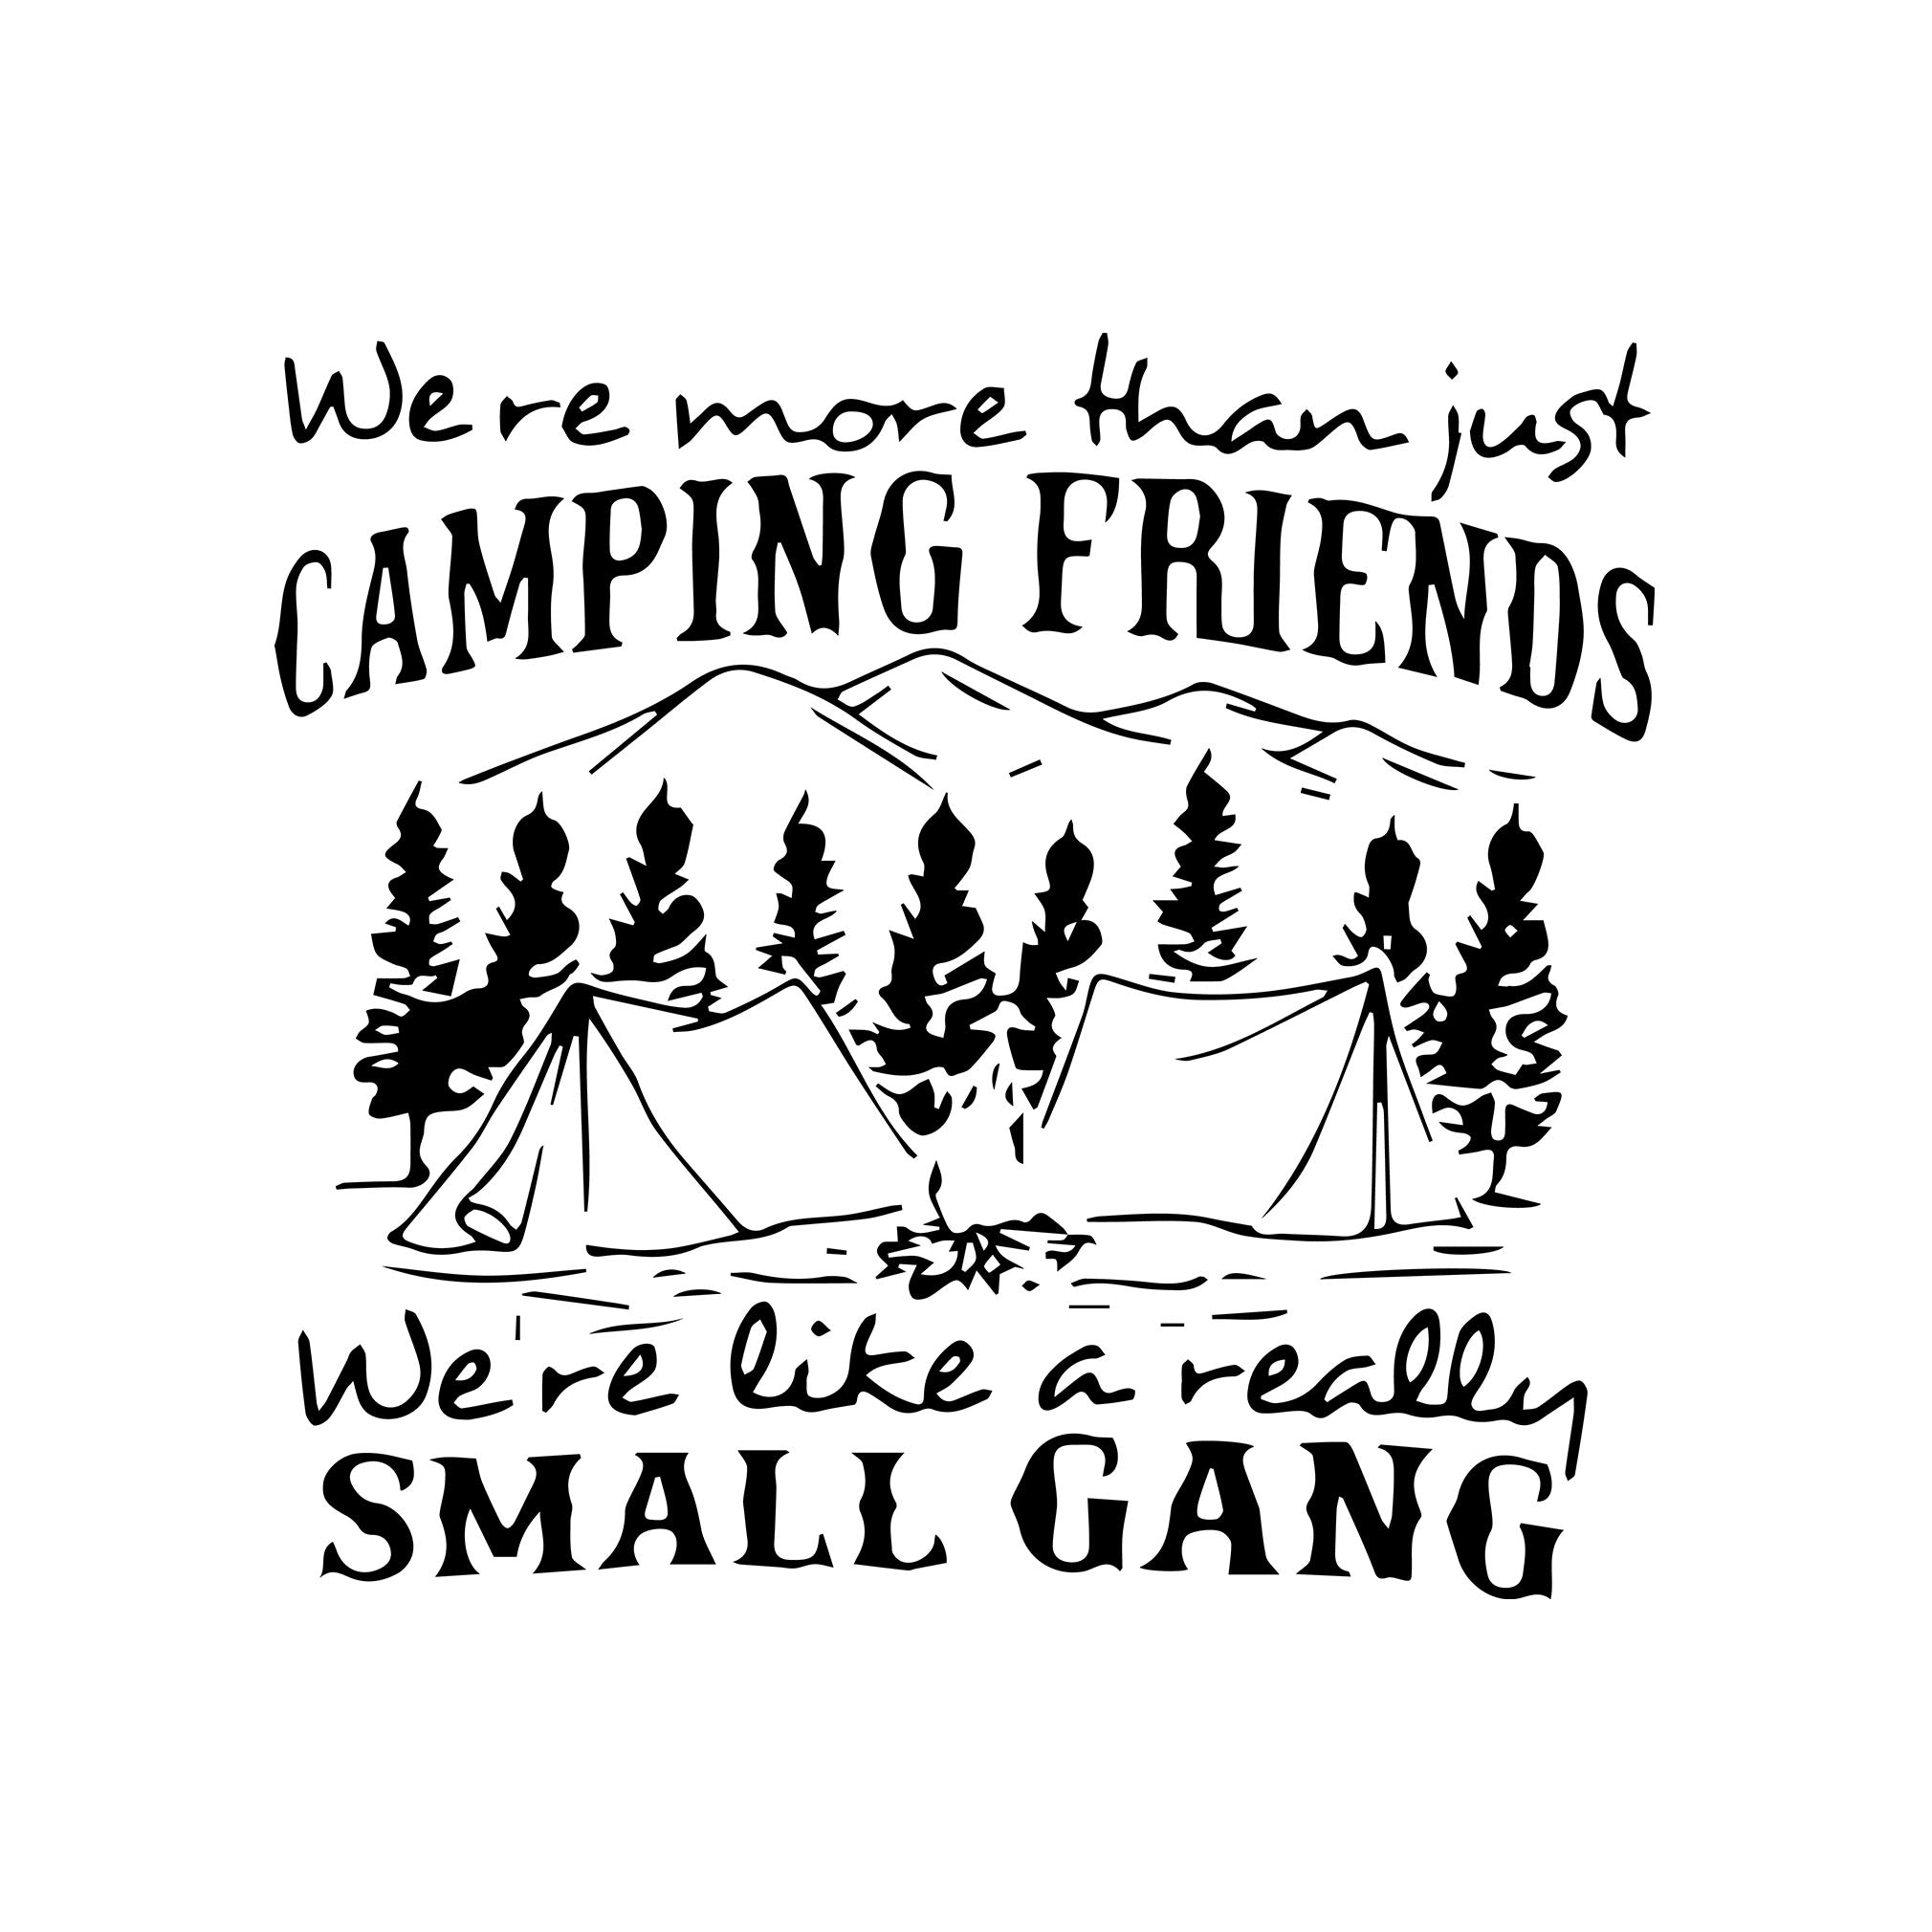 We are more than just camping friends we are like a really small gang svg ,dxf,eps,png digital file